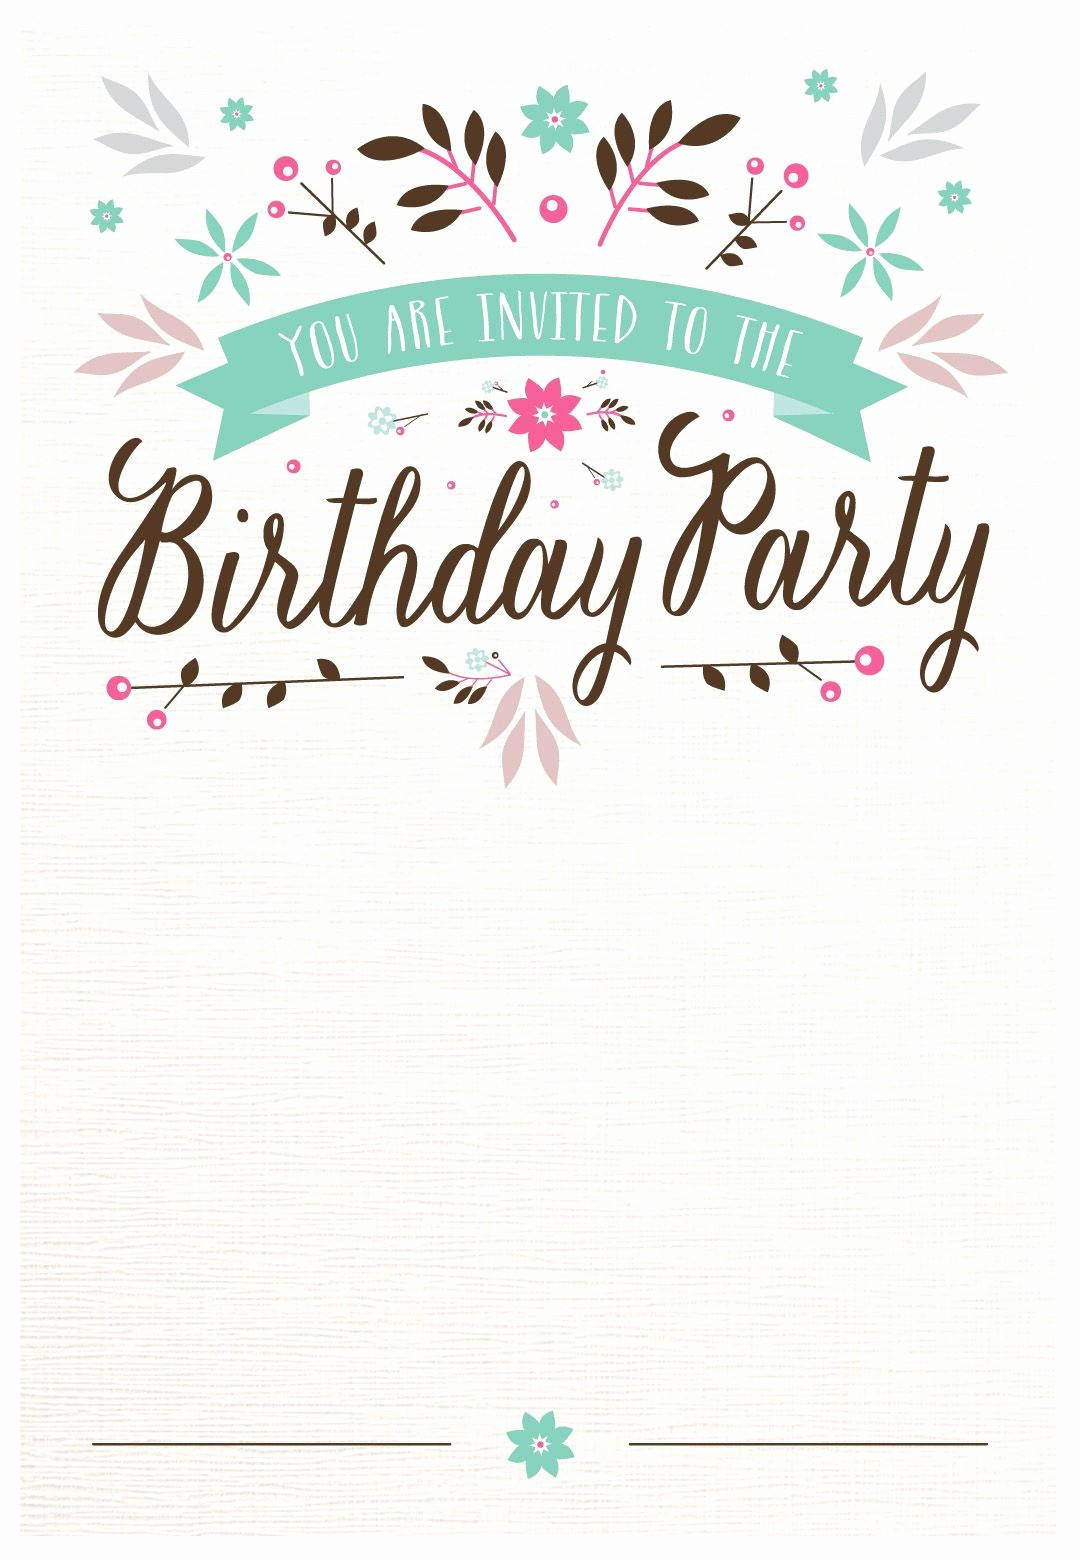 Birthday Party Invitation Card Template Elegant Flat Floral Free Printable Birthday Invitation Template